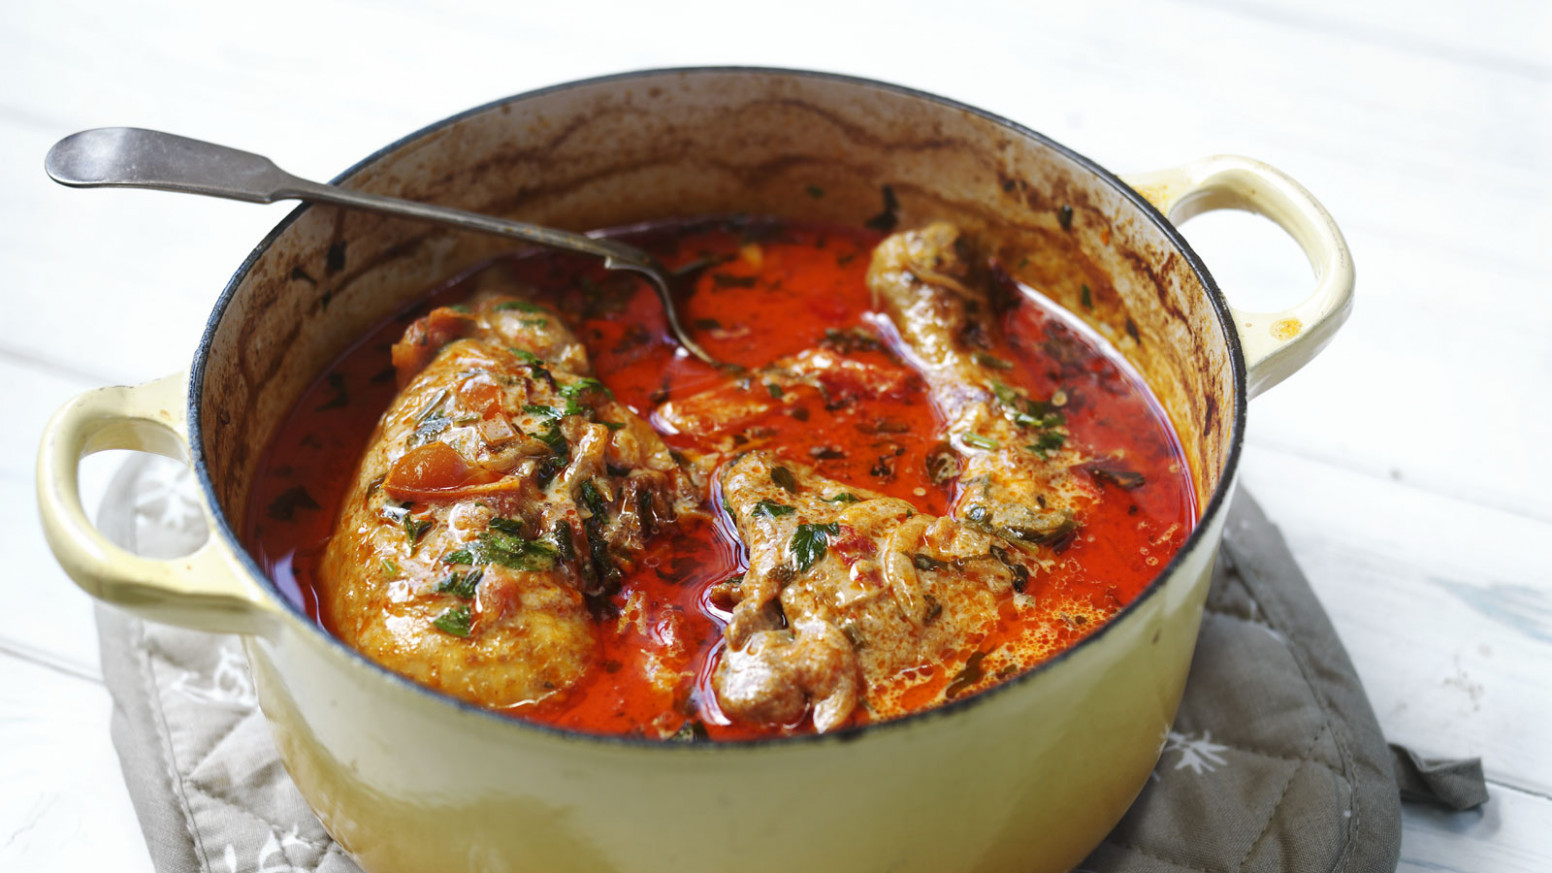 Chicken paprika - recipes of chicken